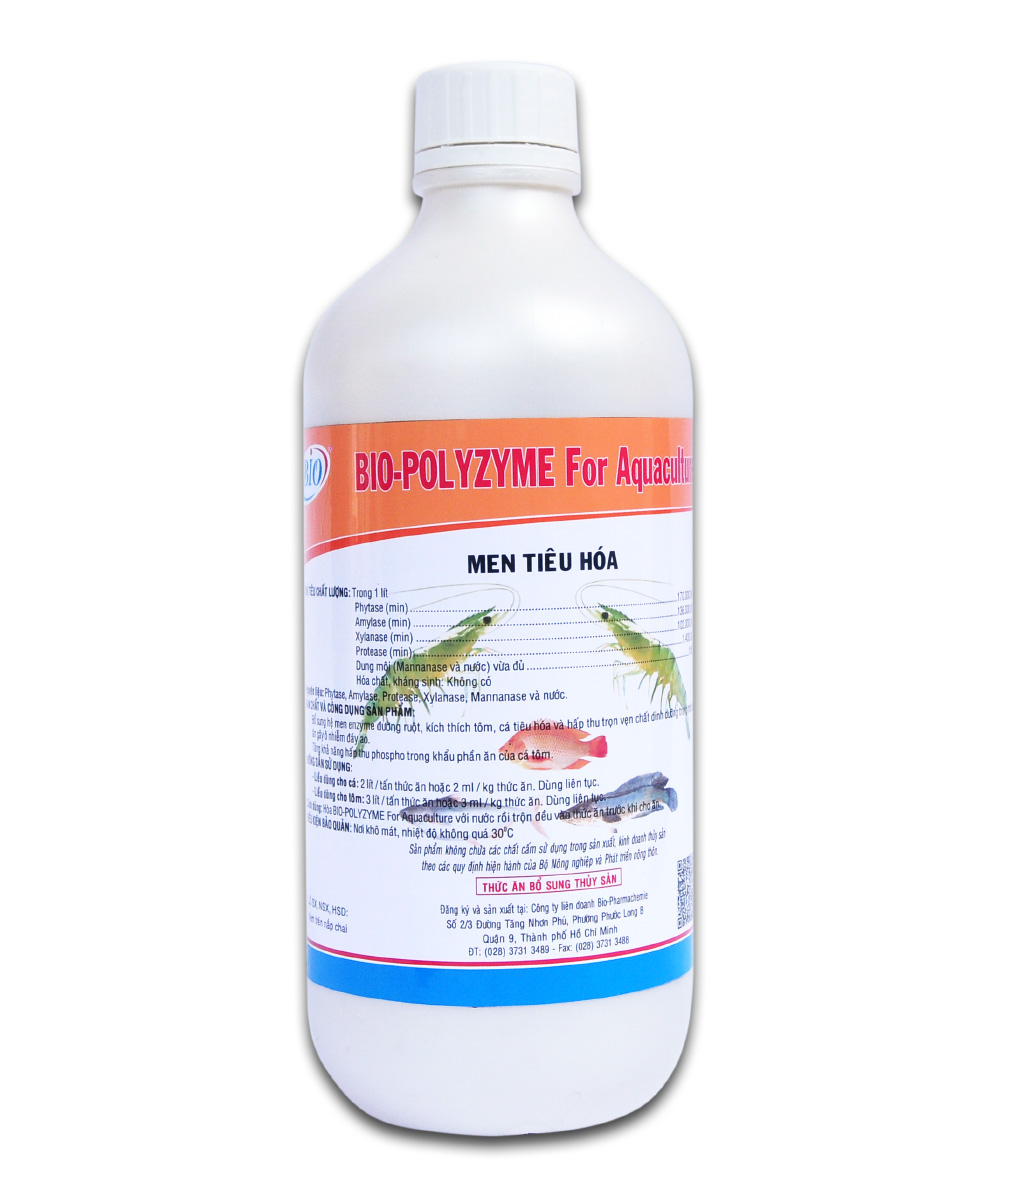 BIO-POLYZYME  For Aquaculture